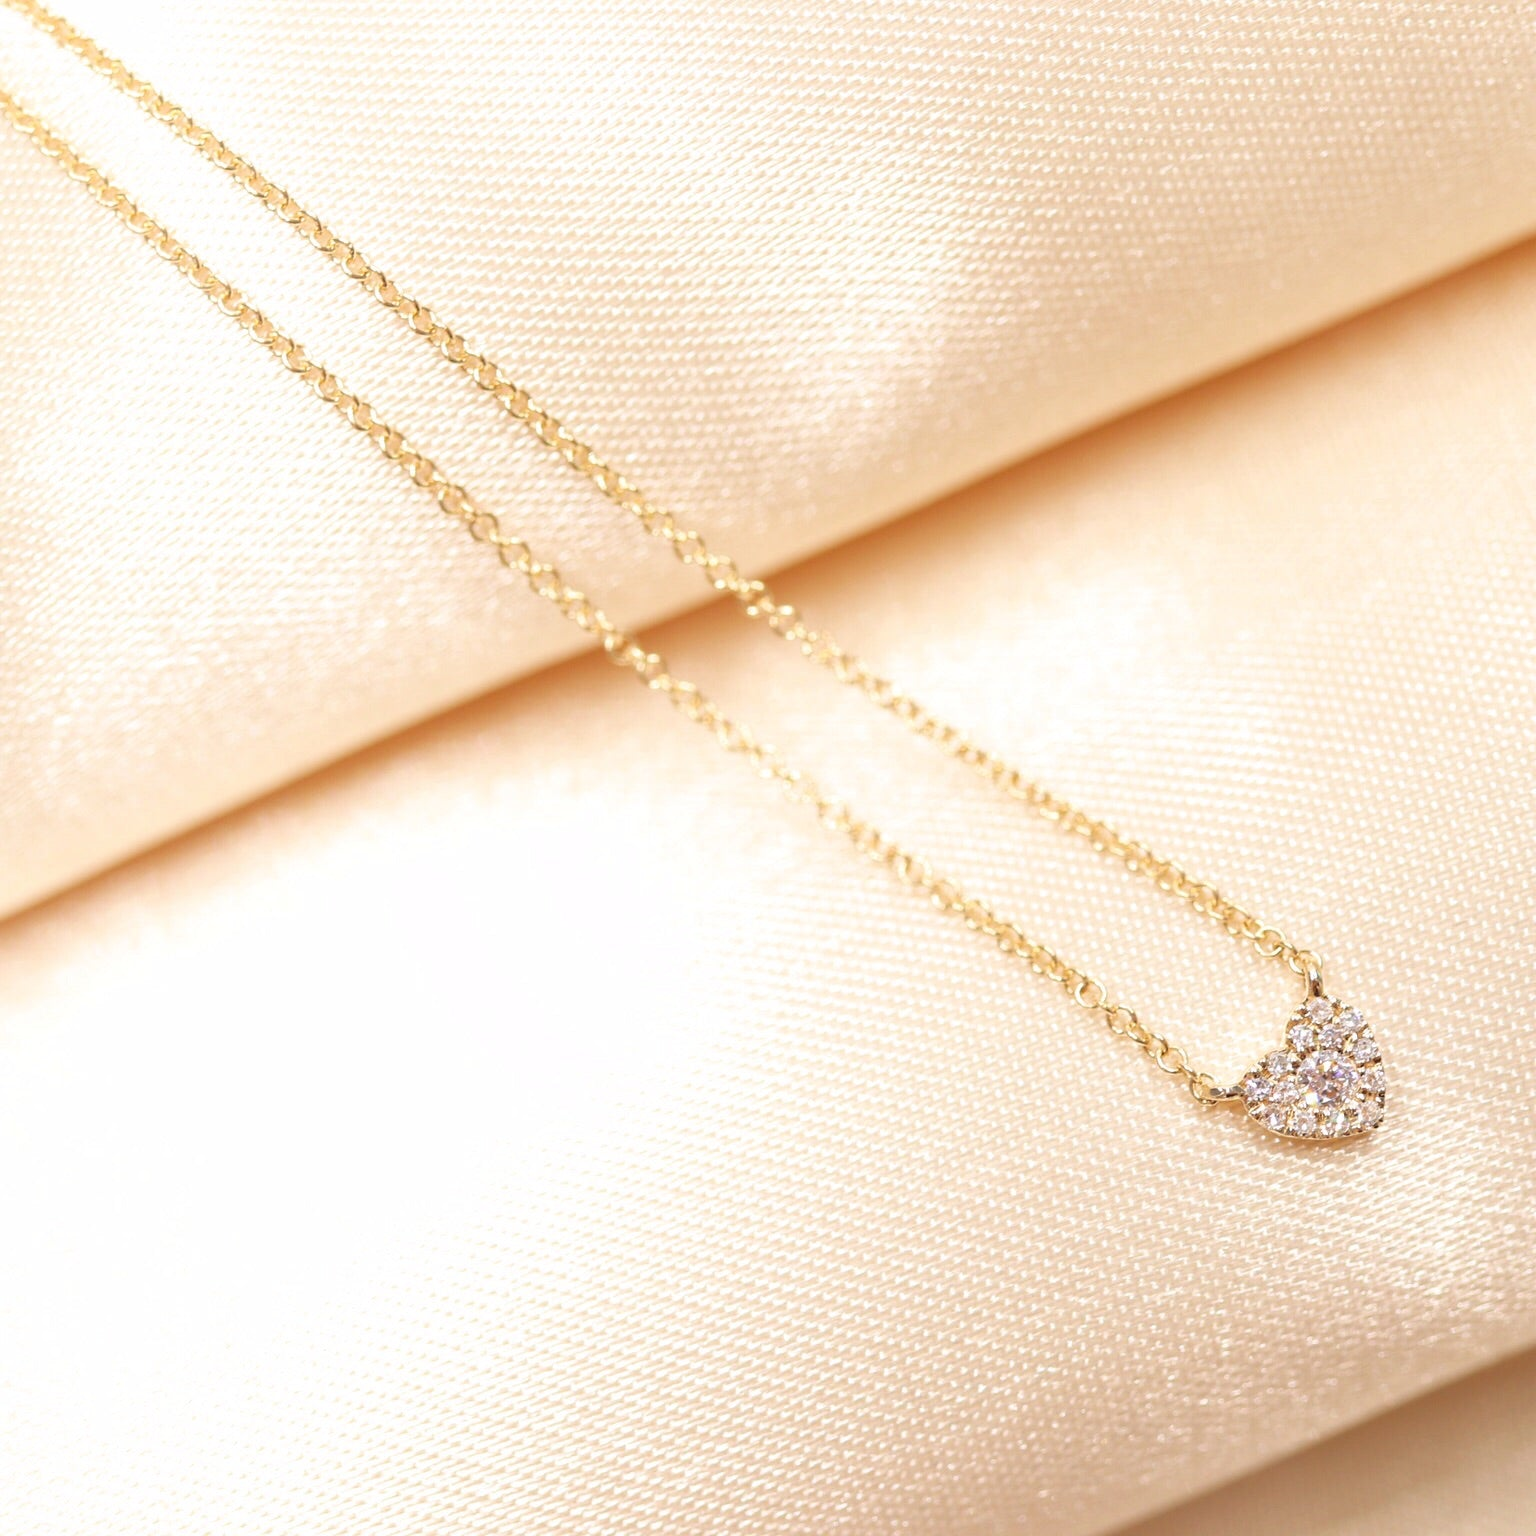 14K Gold One Love Heart Shaped Diamond Necklace - Ice Motif